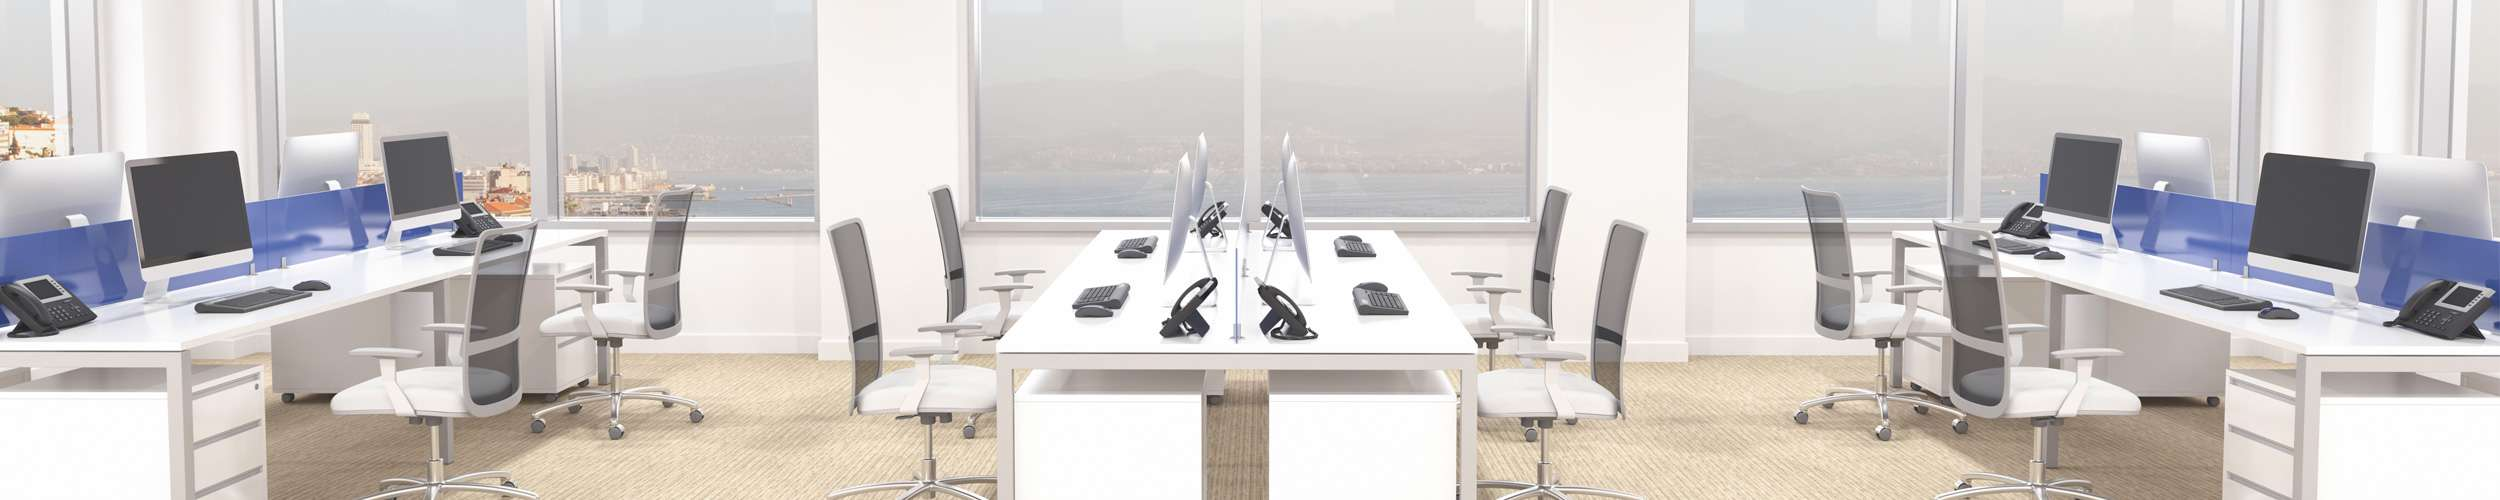 Office with Workstations